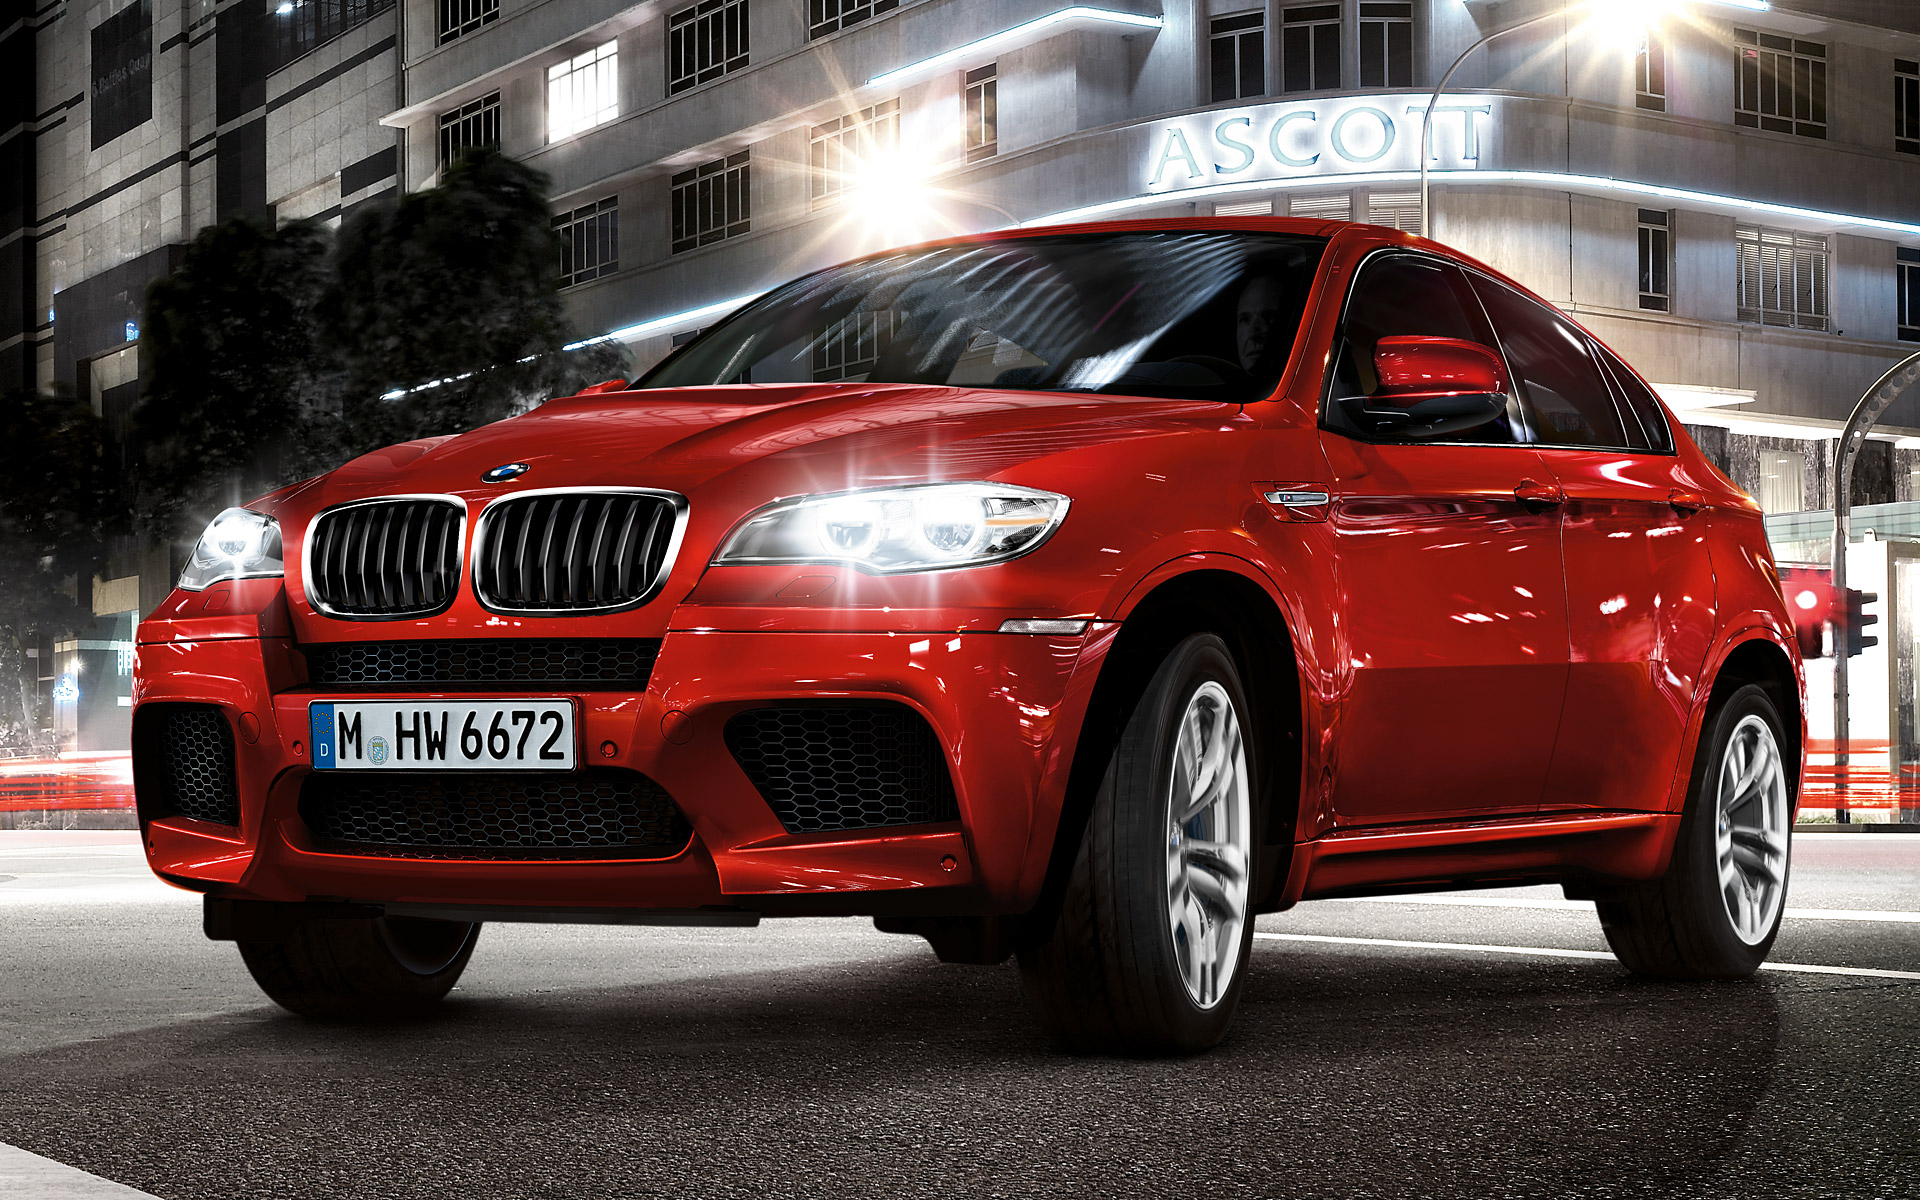 bmw x6 2013 images #2